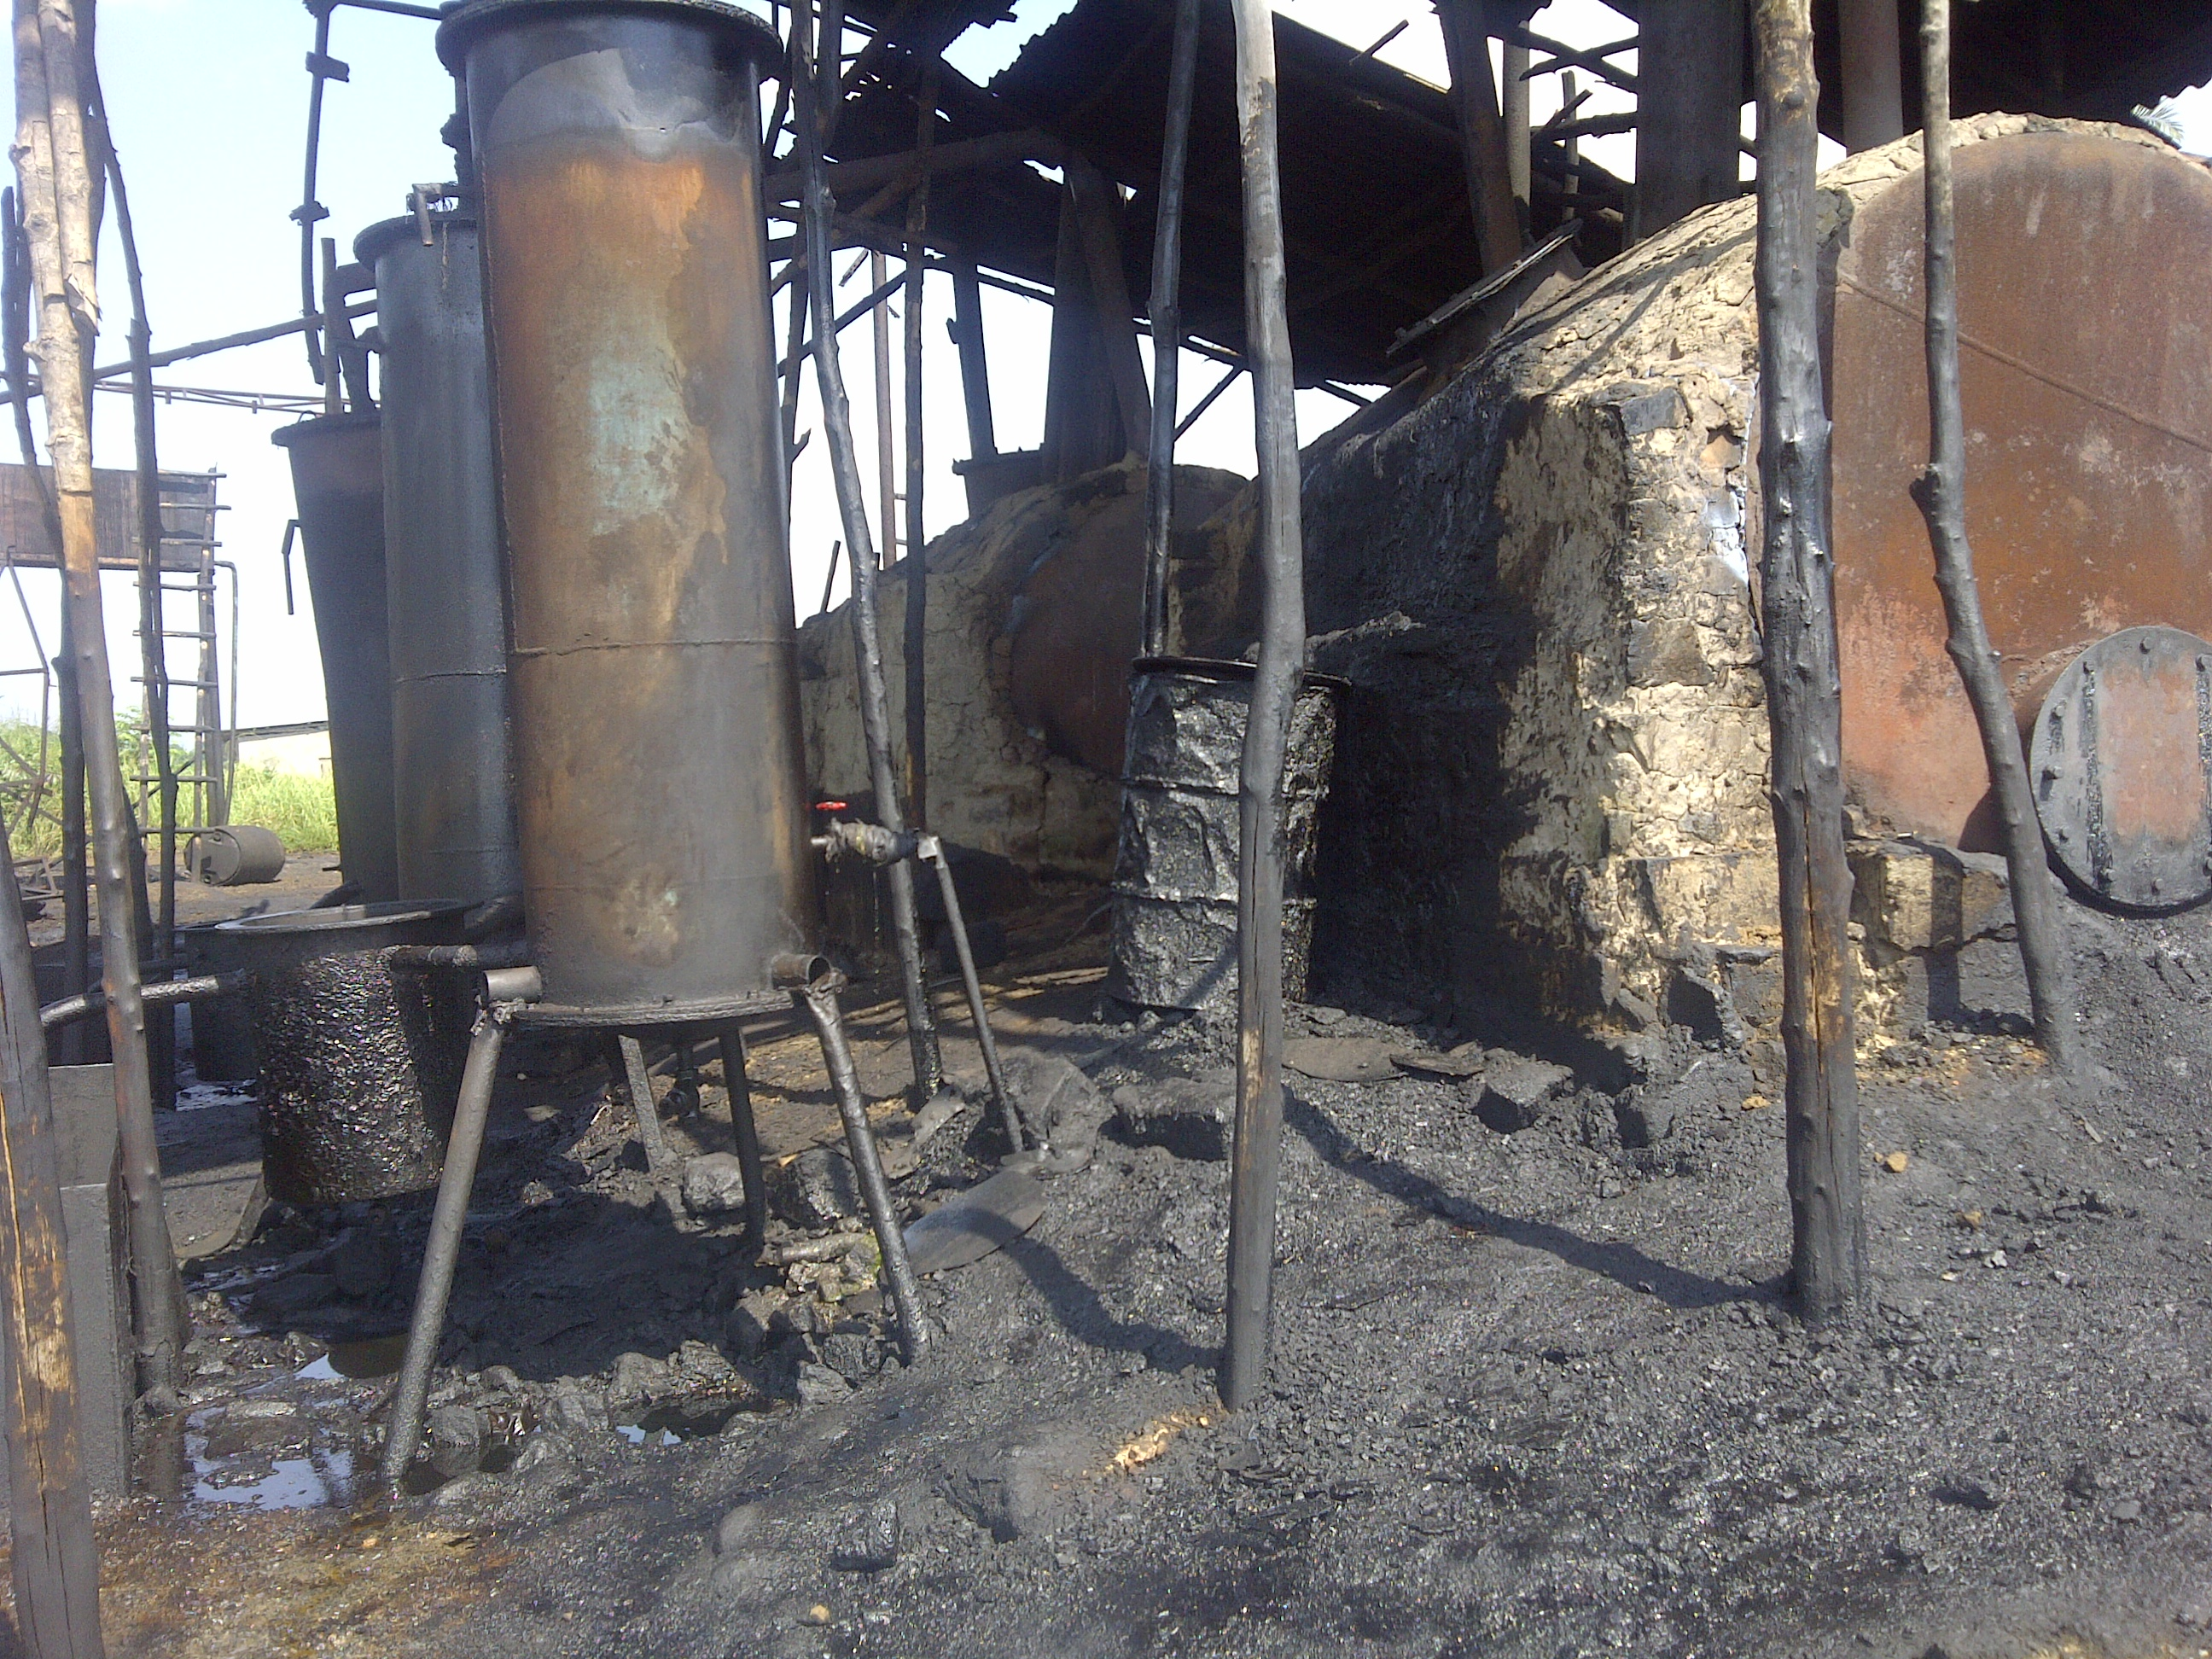 Primitive technology waste oil processing causing pollution